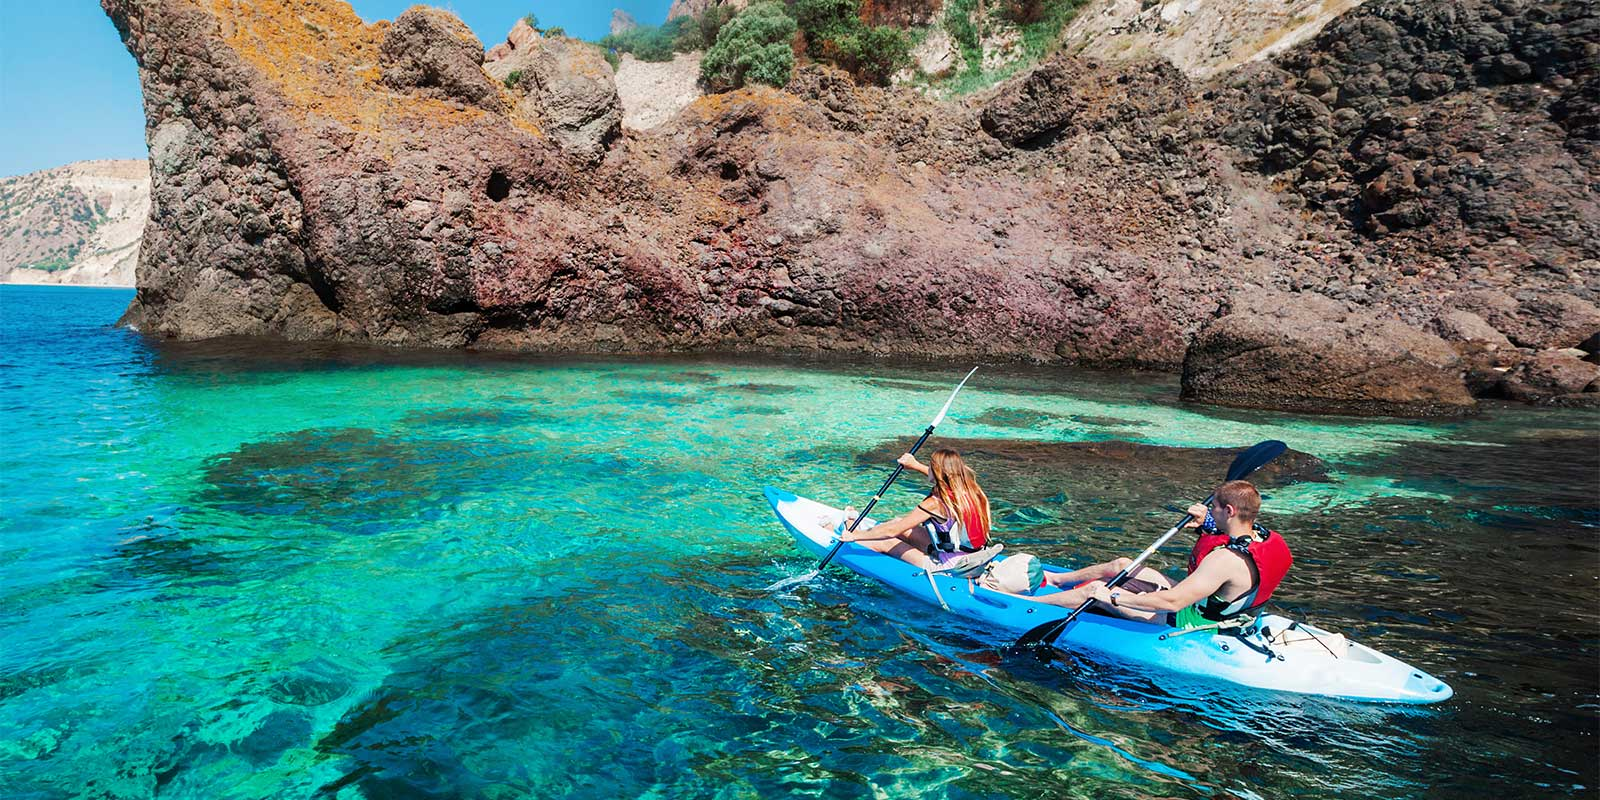 Young people kayaking around coastal waters in Turkey